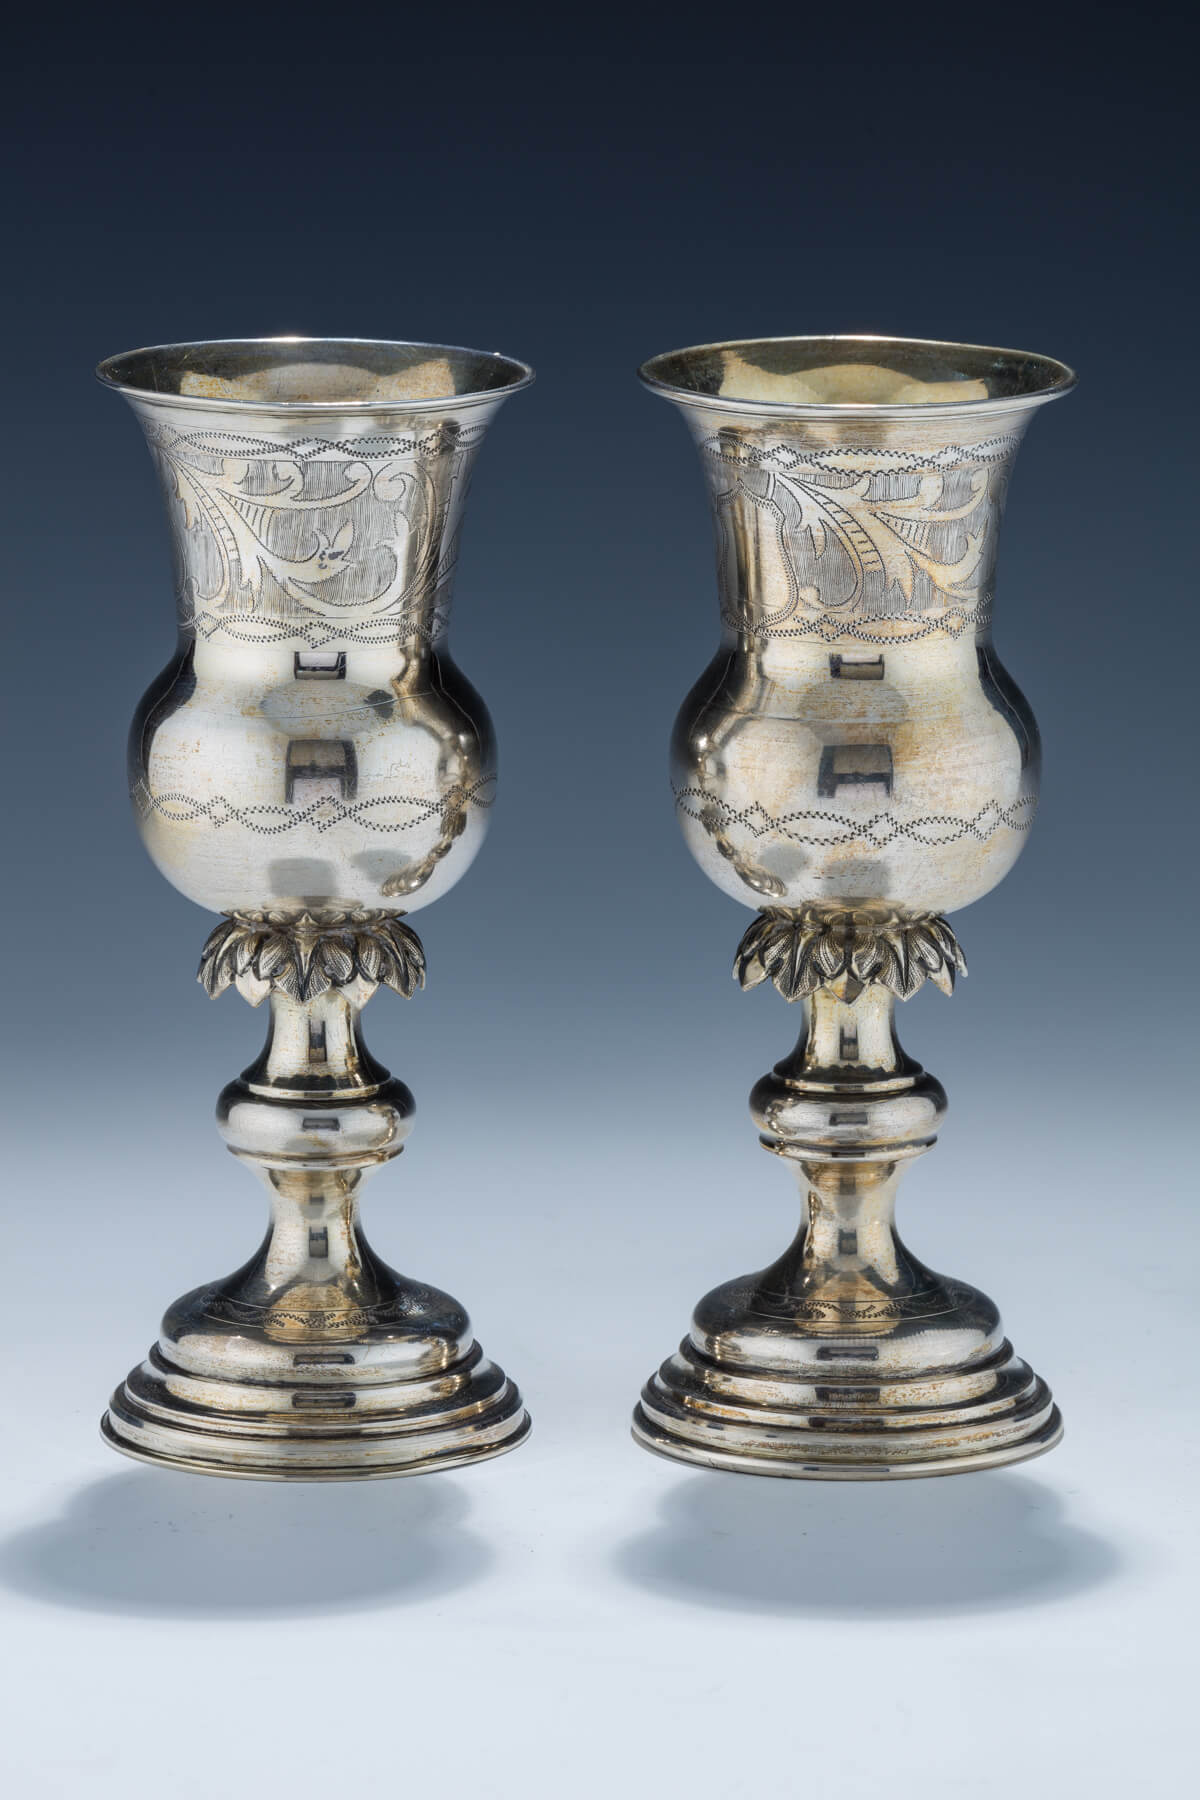 45. A Pair of Early Silver Kiddush Cups by Isaac Goldman